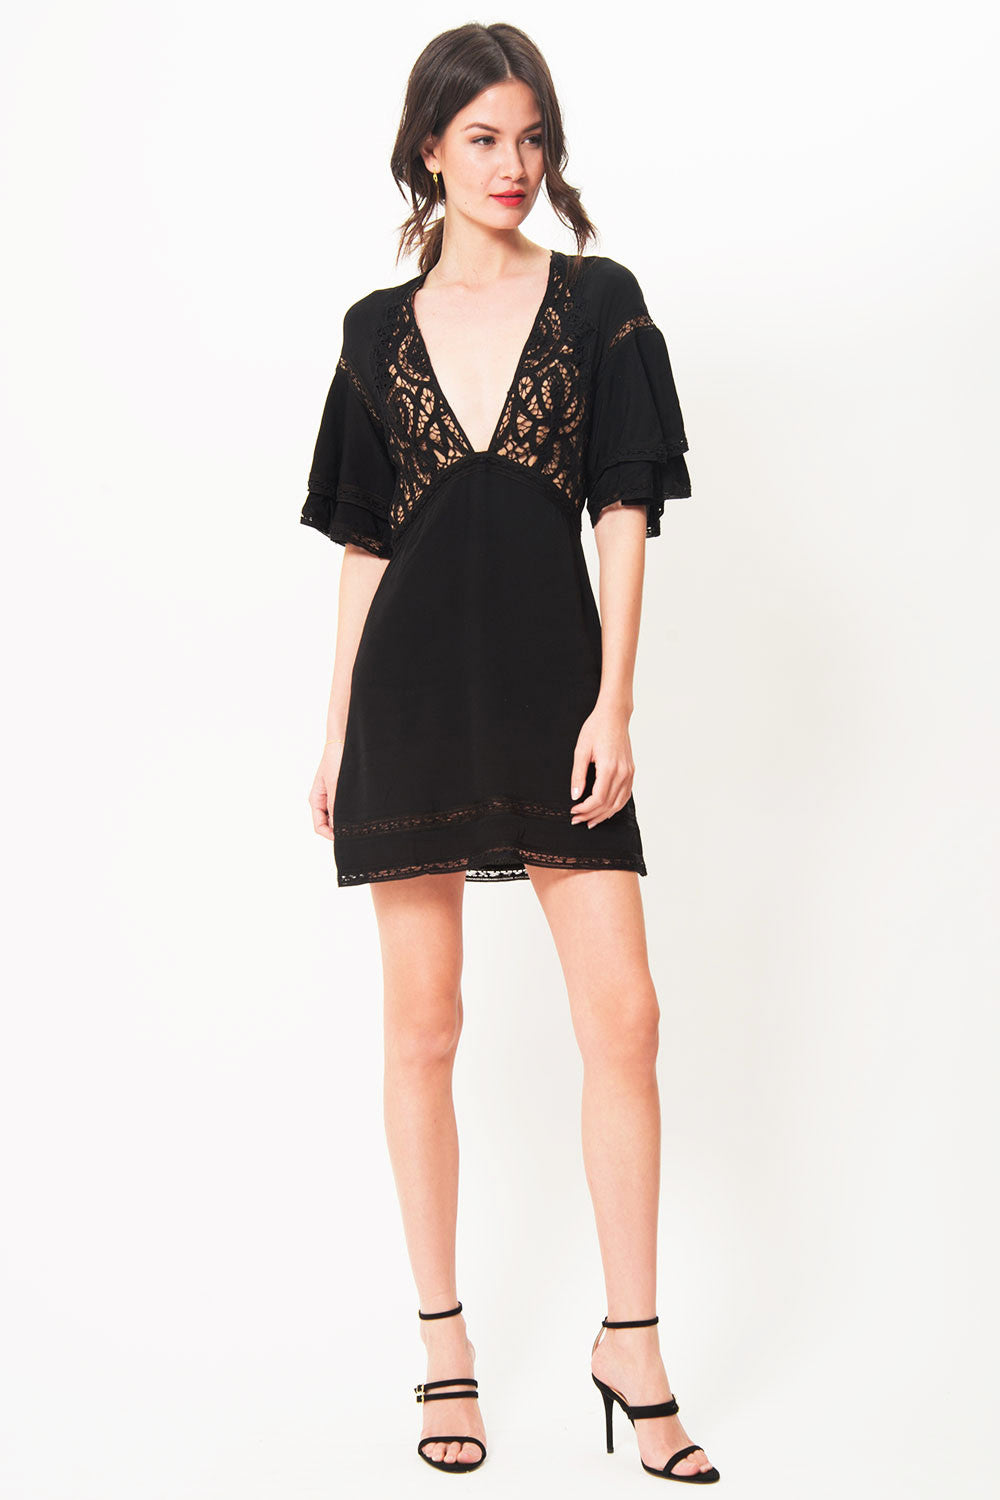 For Love and Lemons Carmine Mini Dress - Primary New York